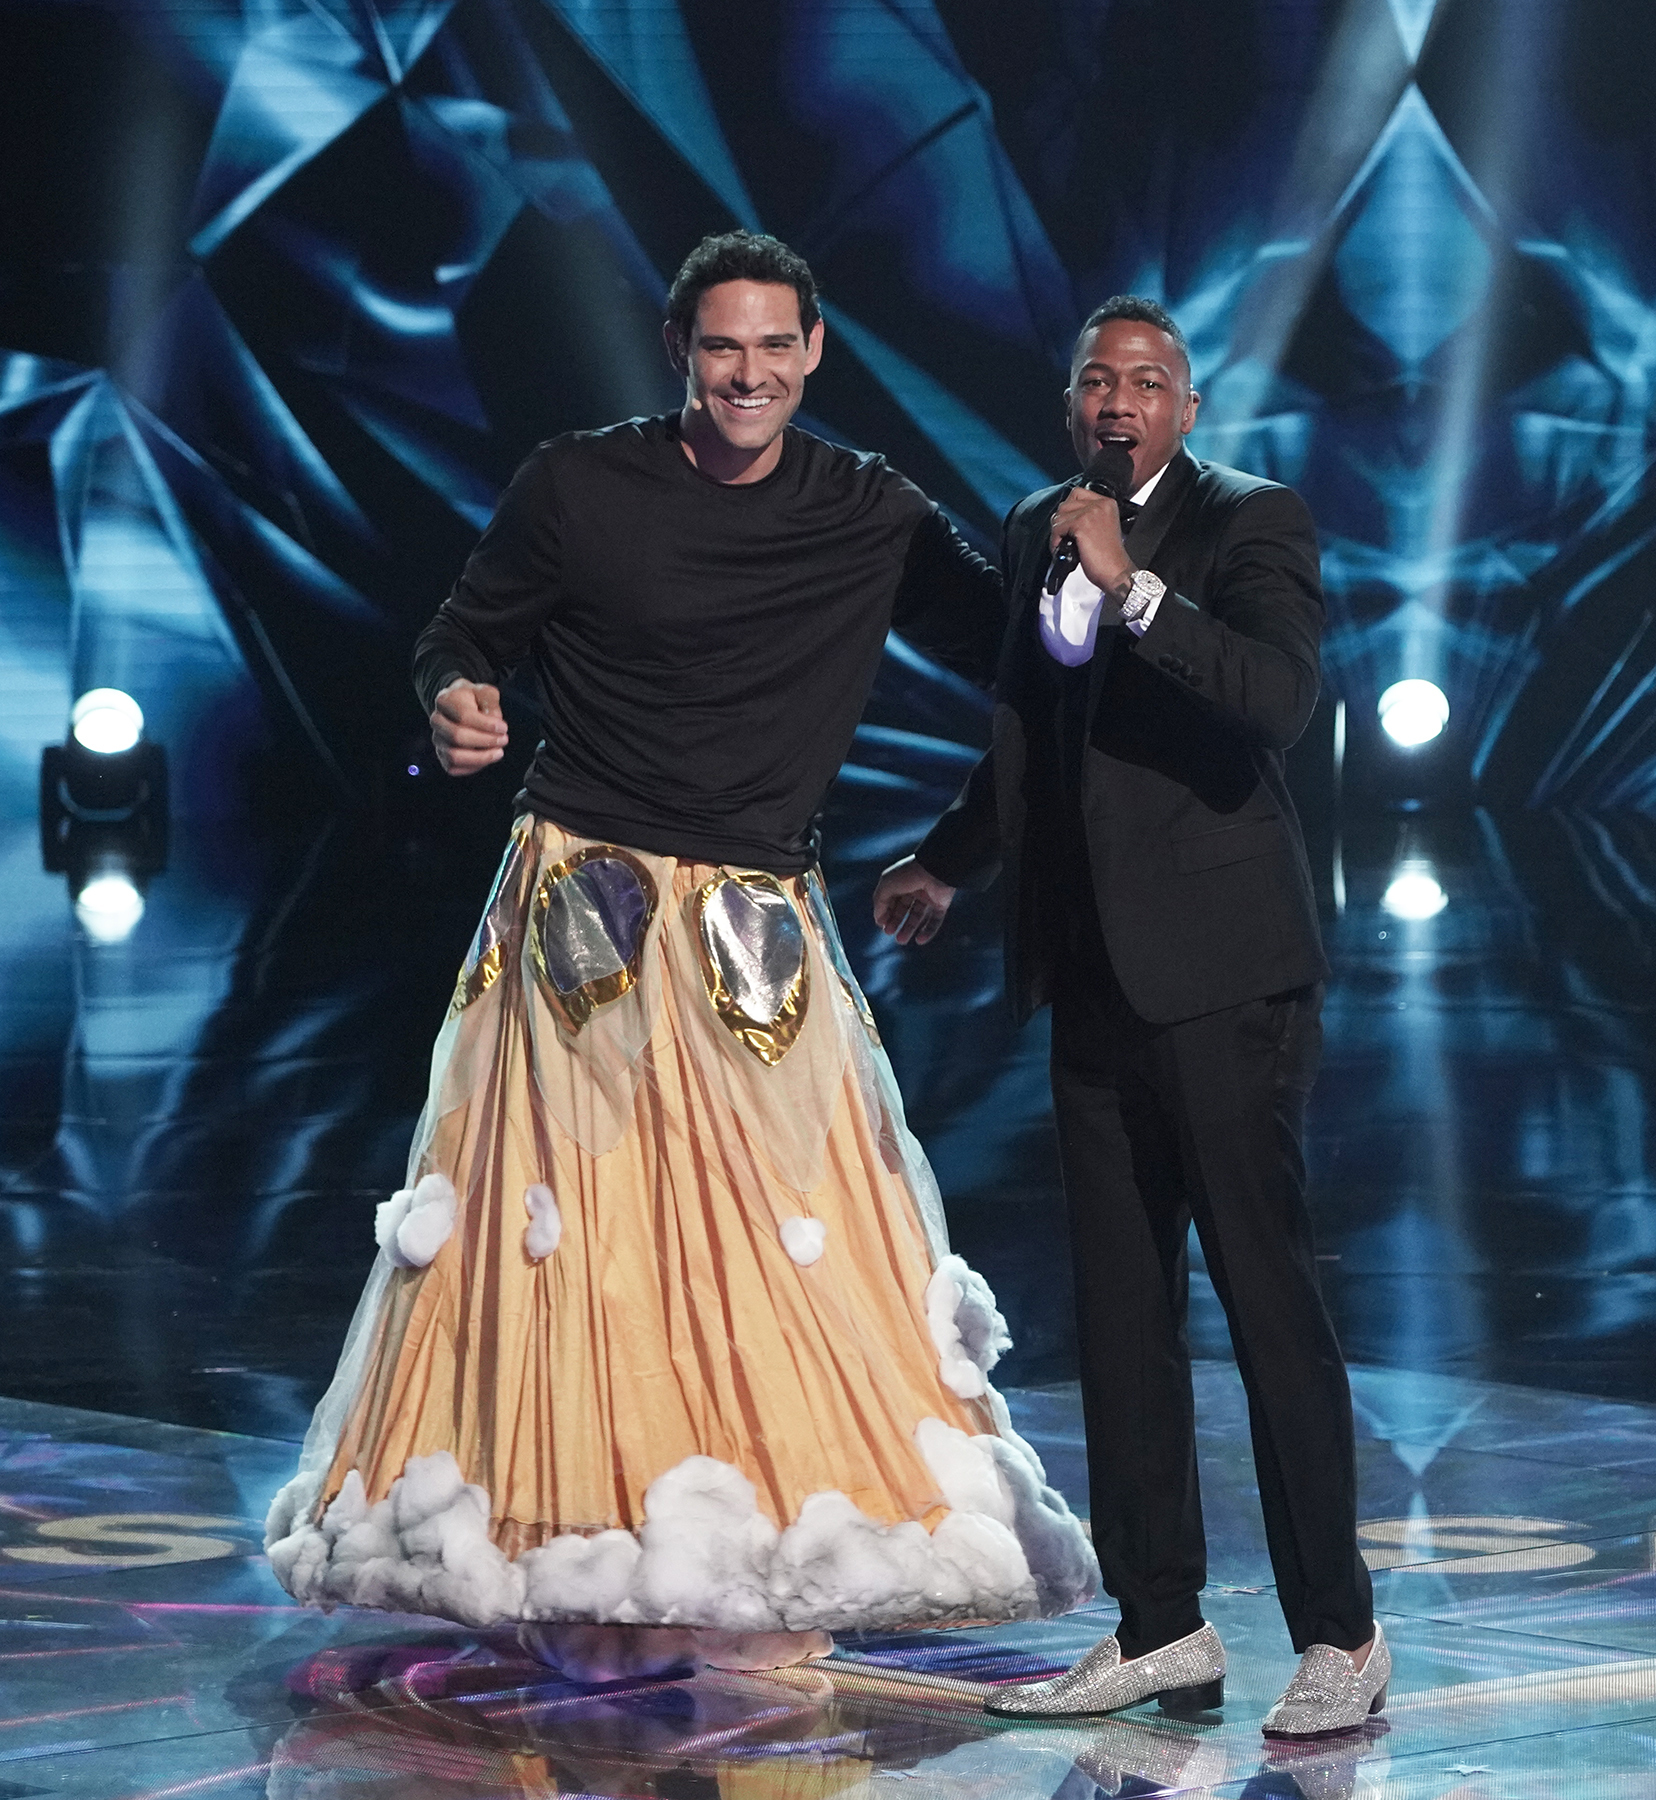 """THE MASKED SINGER: L-R: Mark Sanchez and host Nick Cannon in the """"The Group B Play Offs - Cloudy with a Chance of Clues"""" episode of THE MASKED SINGER airing Wednesday, Oct. 14 (8:00-9:00 PM ET/PT) on FOX."""